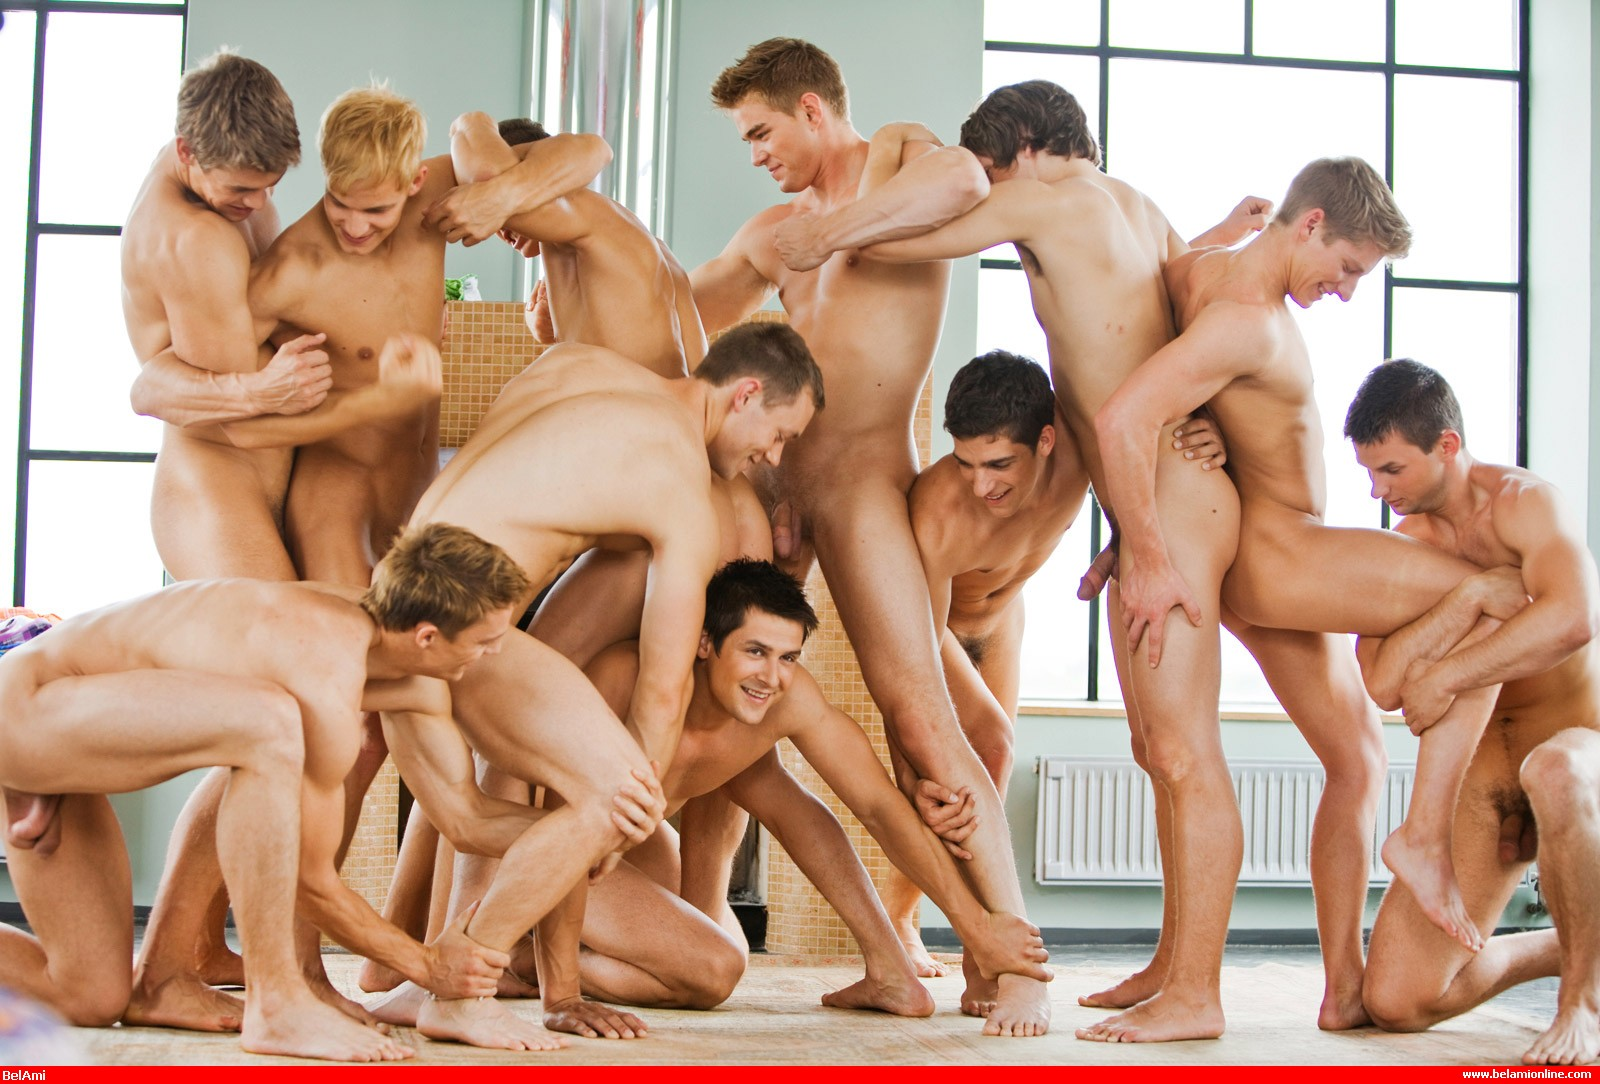 Groups of nude men masturbating gay fuck